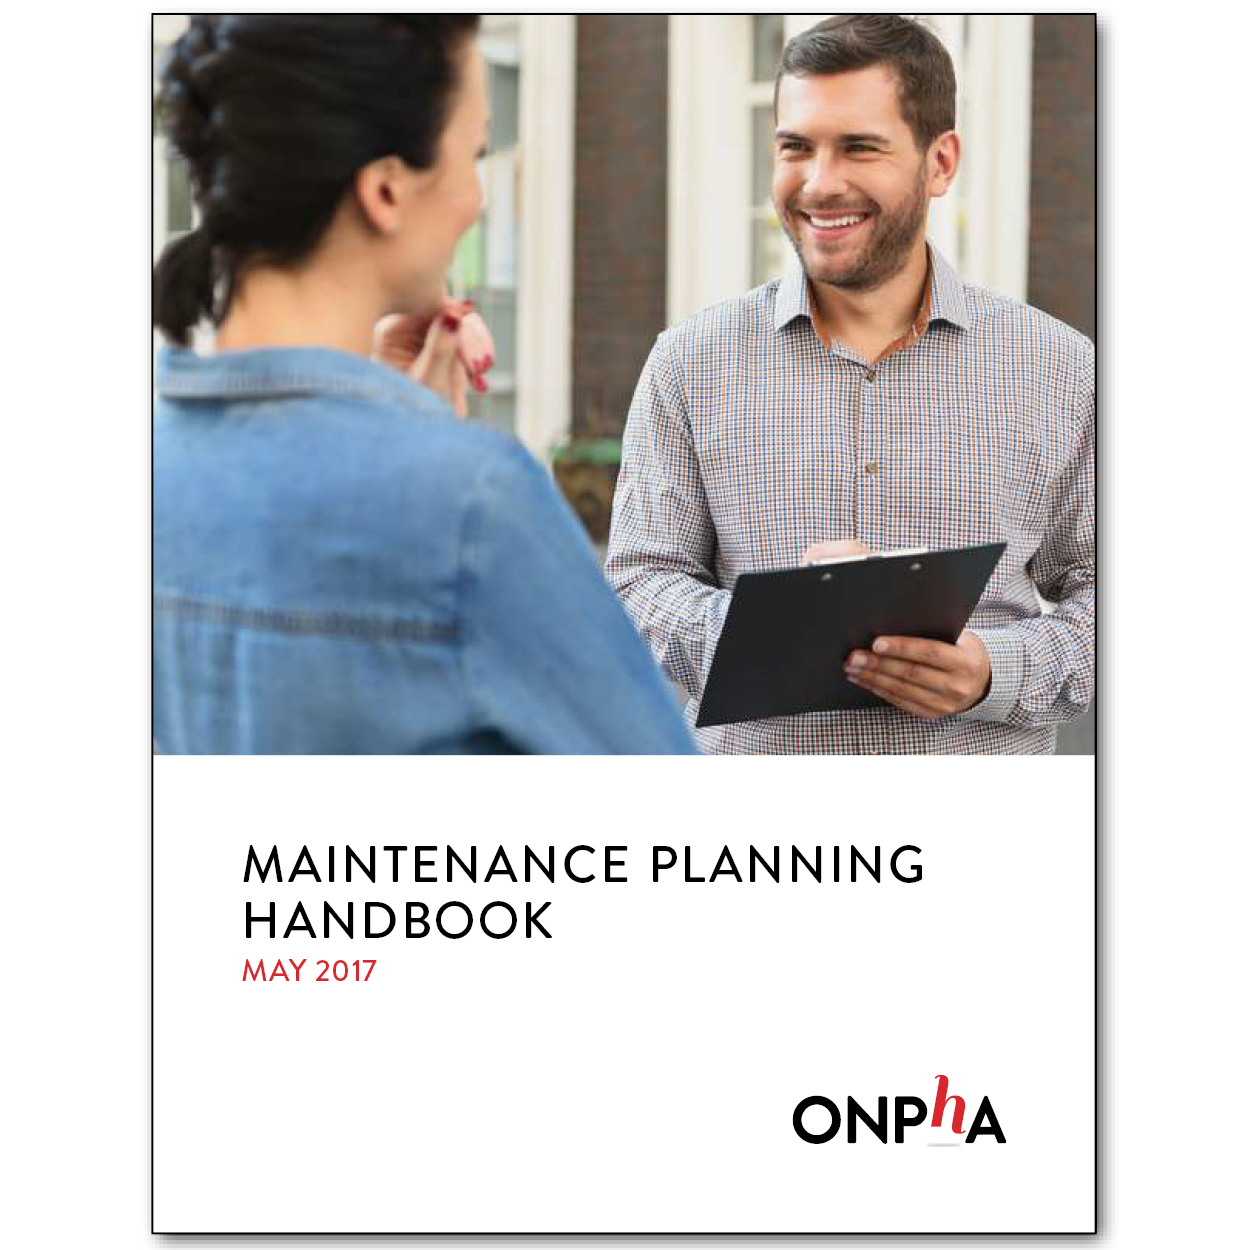 Maintenance Planning Handbook (2017) - electronic